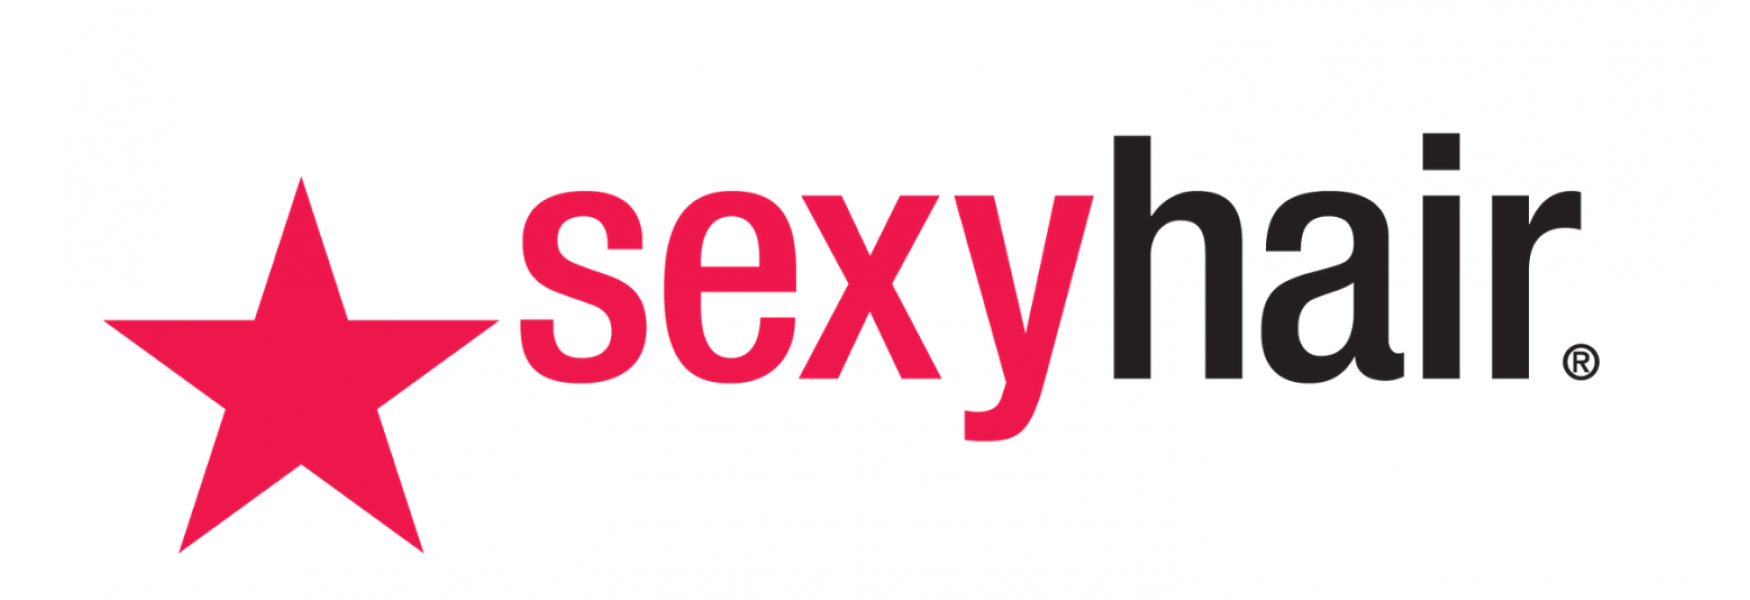 Sexy Webpage Banner #2 2021